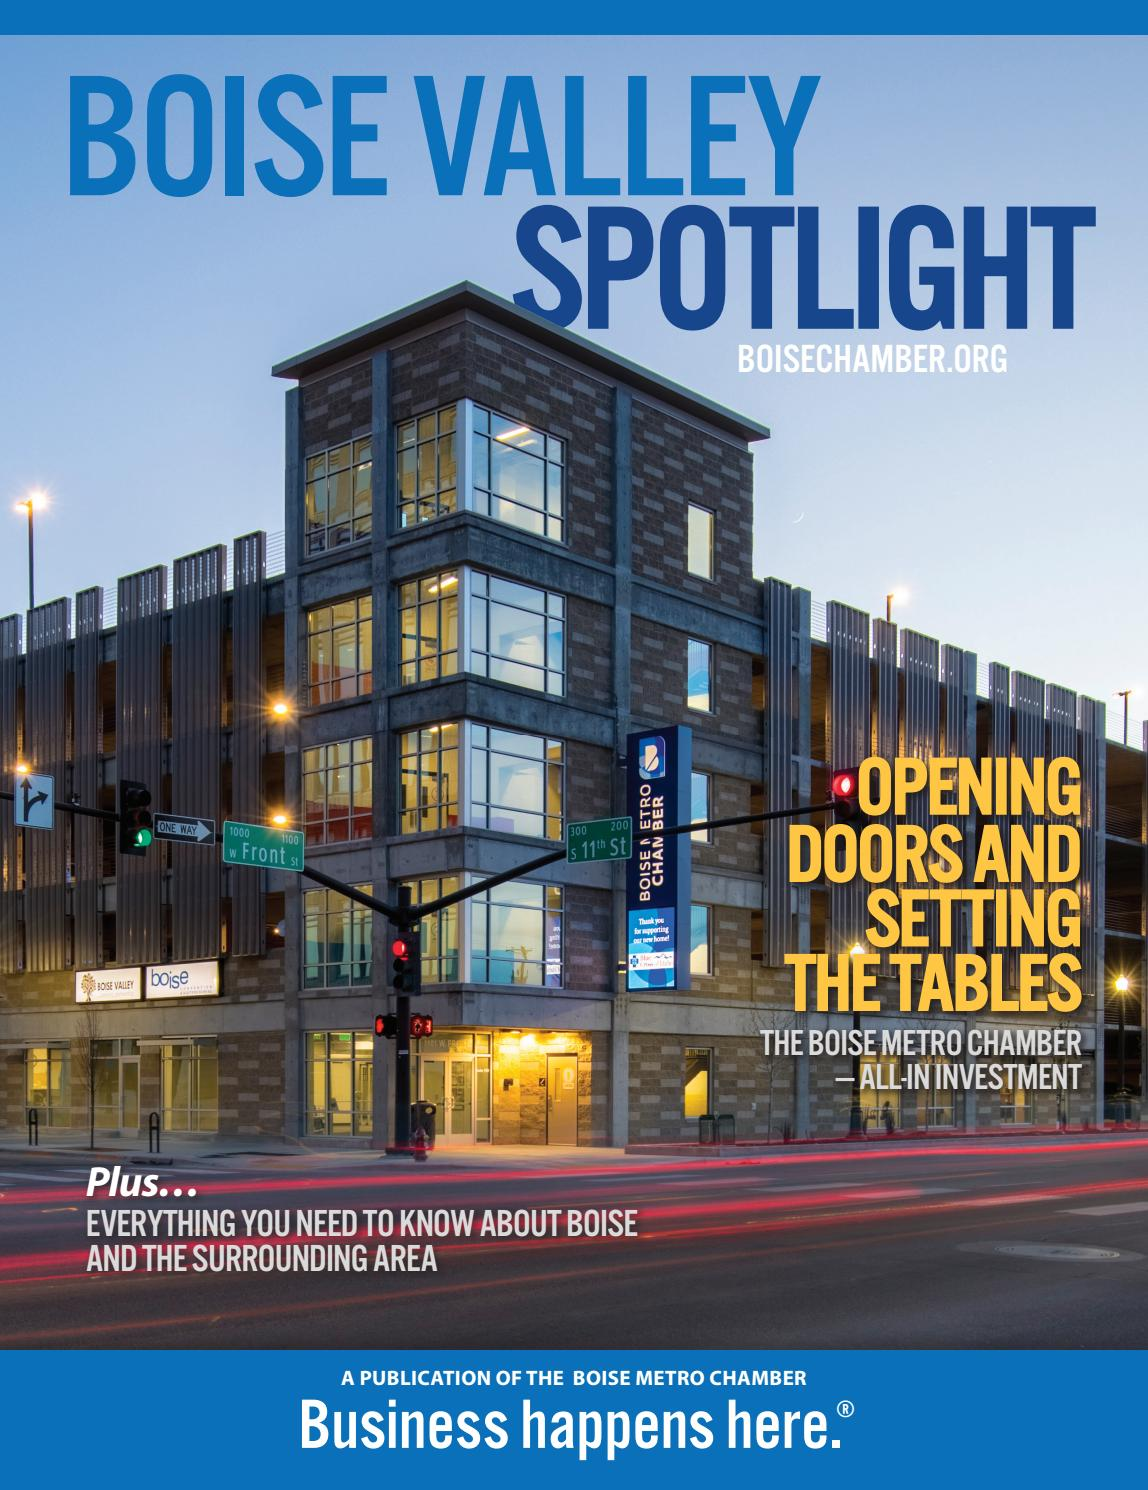 Boise Valley Spotlight 2018 2019 By Idaho Statesman Issuu